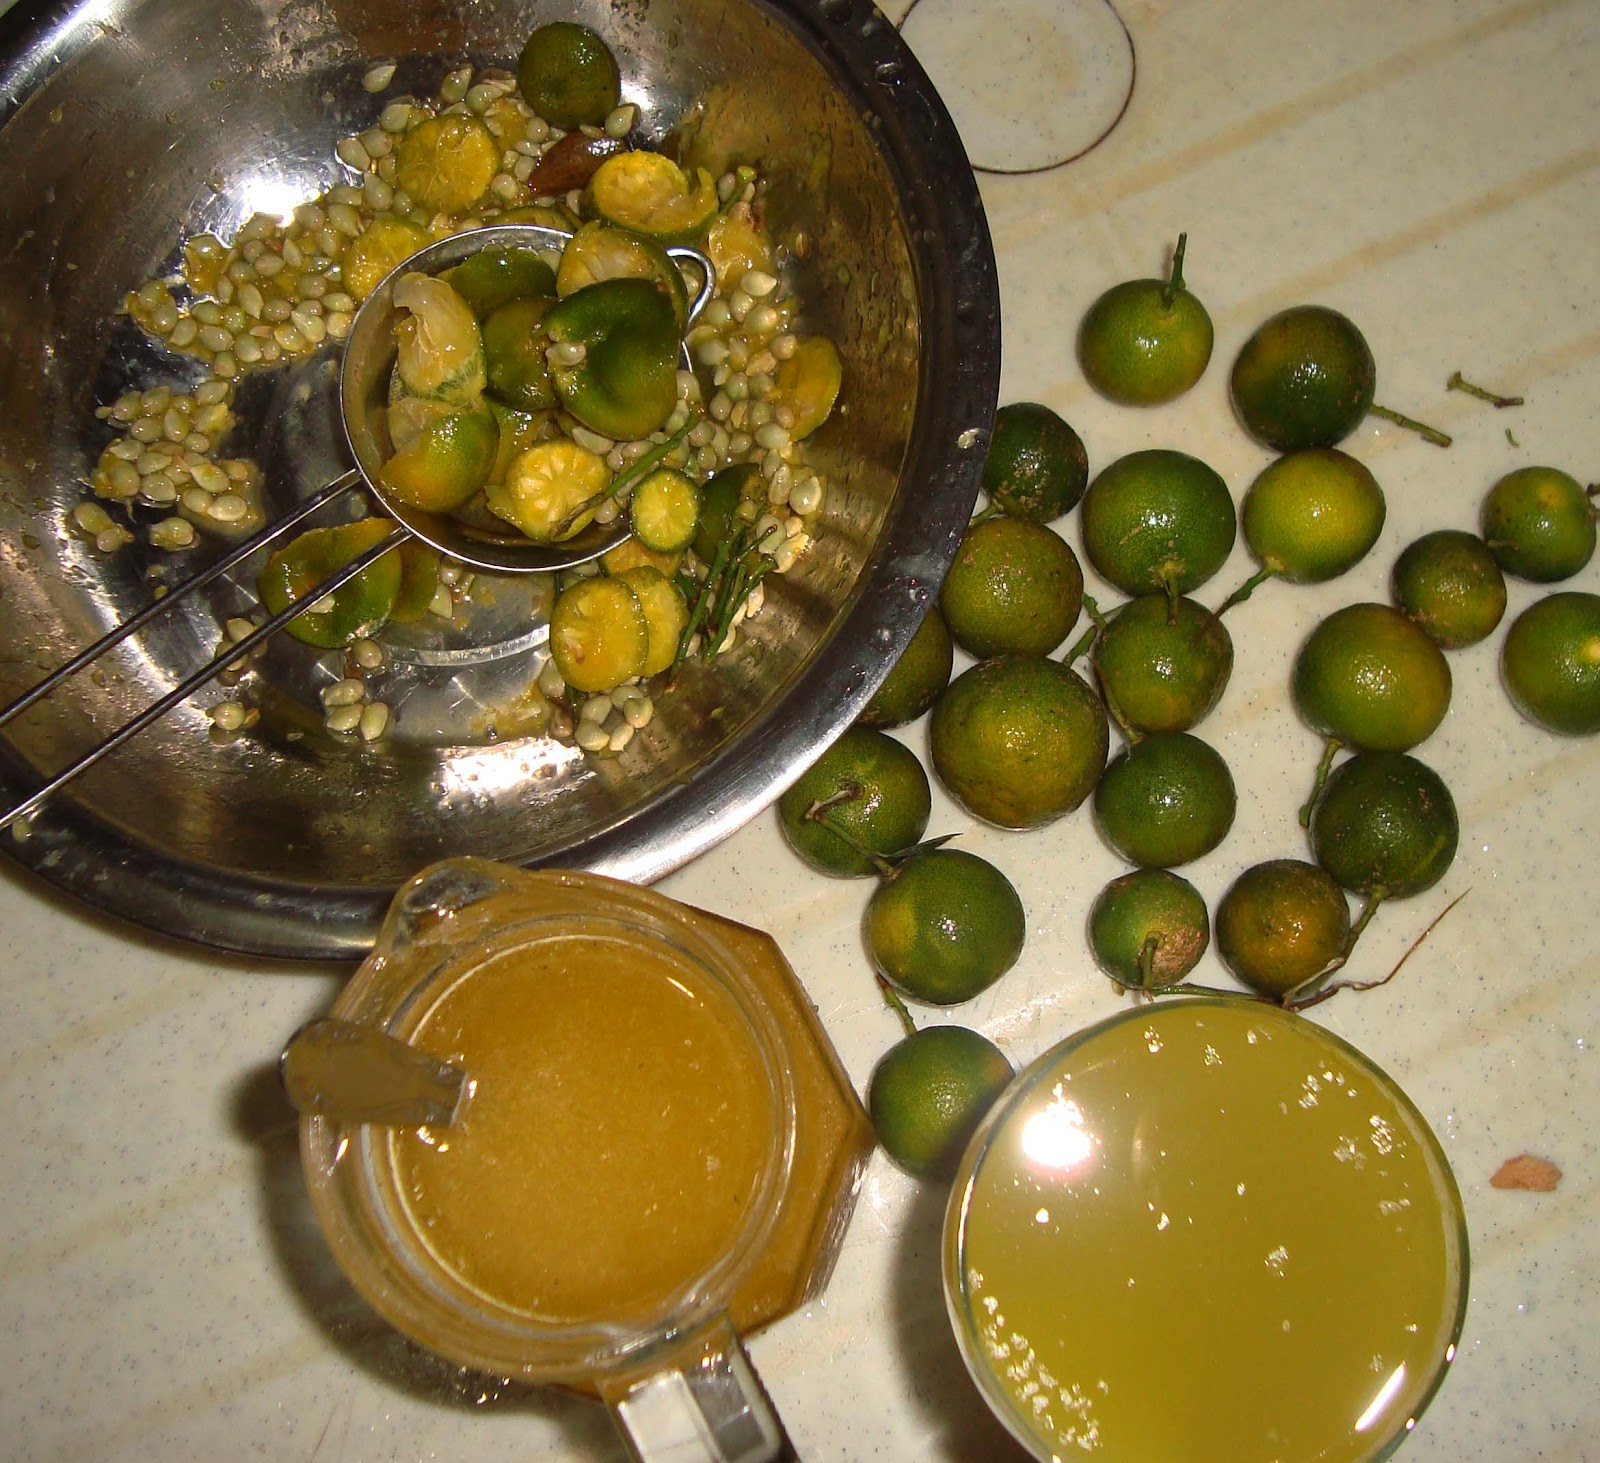 onion and calamansi extracts as coackroach The feasibility of malunggay leaves moringa oleifera as an alternative cockroach killer researcher renzel jane a adal gtade 9- ste- 26 the feasibility of malunggay as an alternative insecticide essay submitted by the effect of onion and calamansi extraxt analysis of investment.